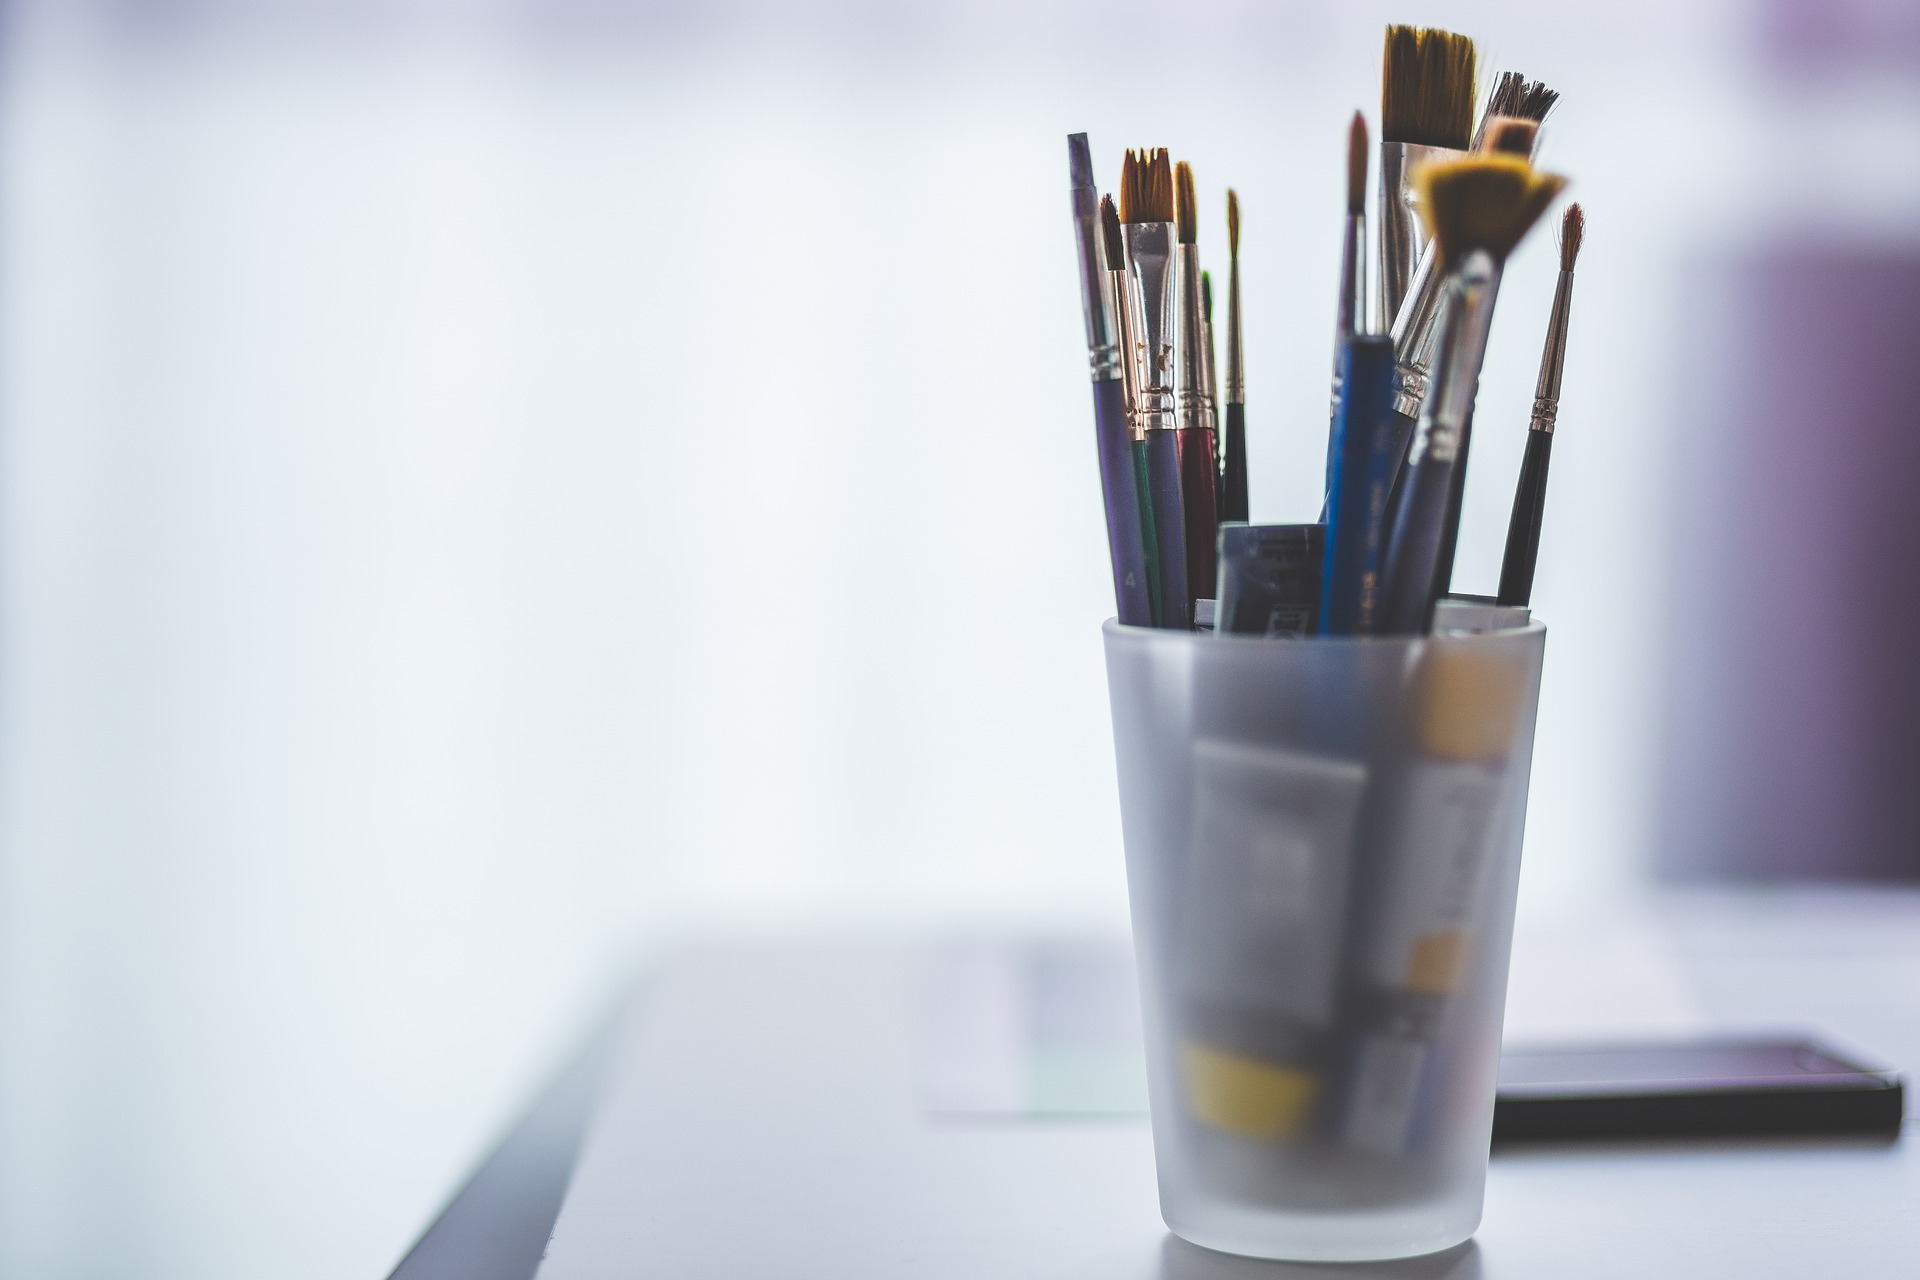 paintbrushes in glass.jpg